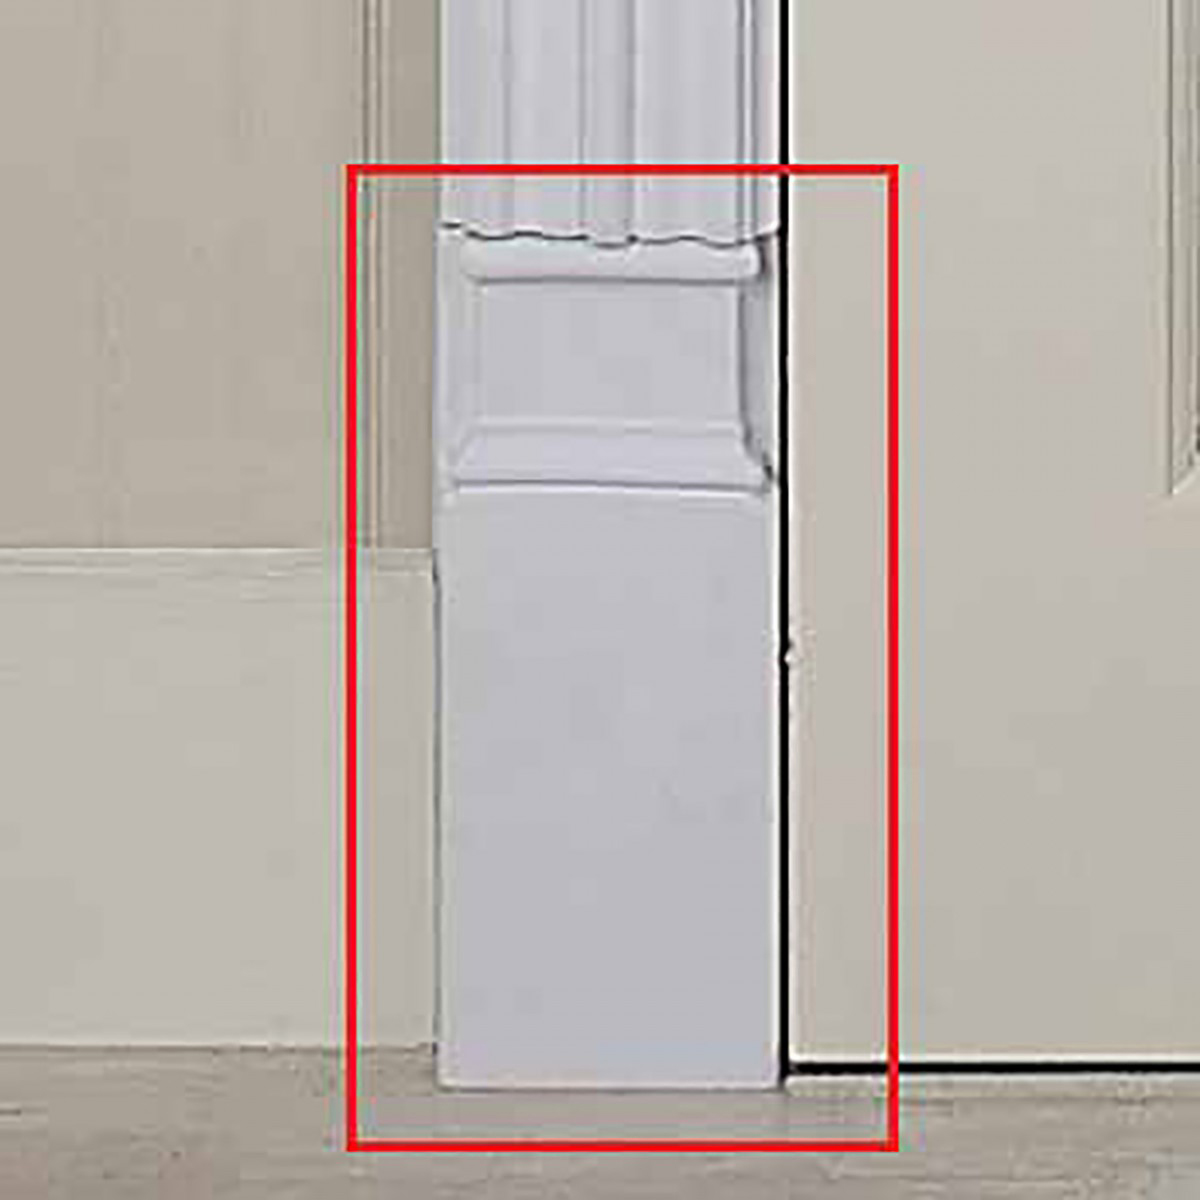 & Door Trim White Urethane Plinth 9 1/2